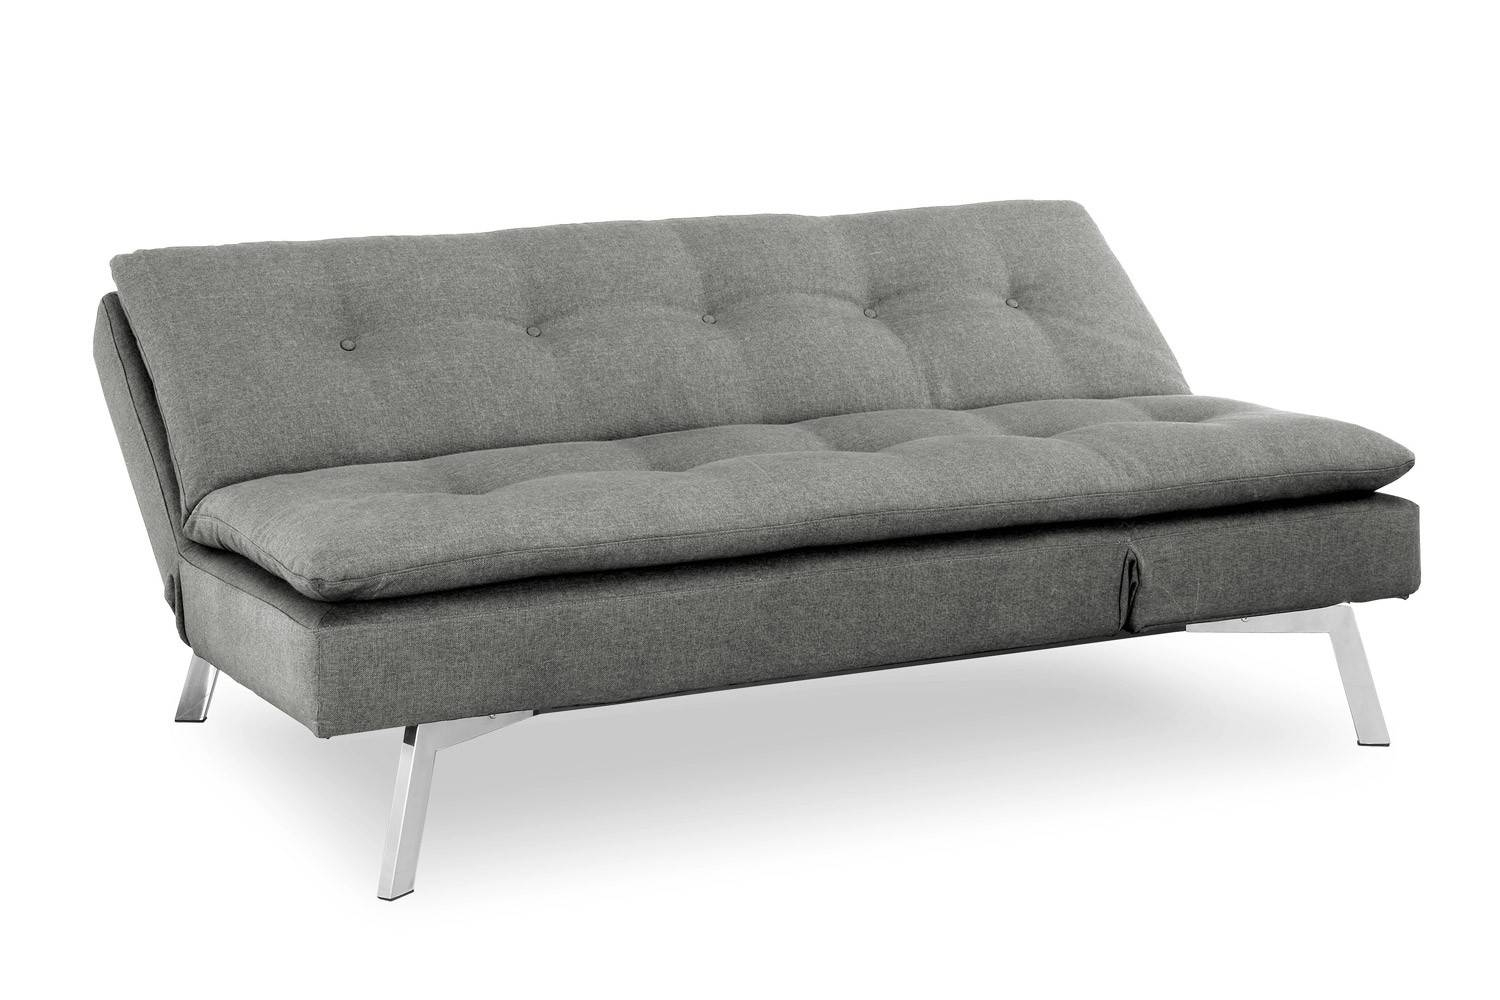 Shelby Sofa Sleeper | Shelby Futon | The Futon Shop Within Cushion Sofa Beds (View 18 of 30)